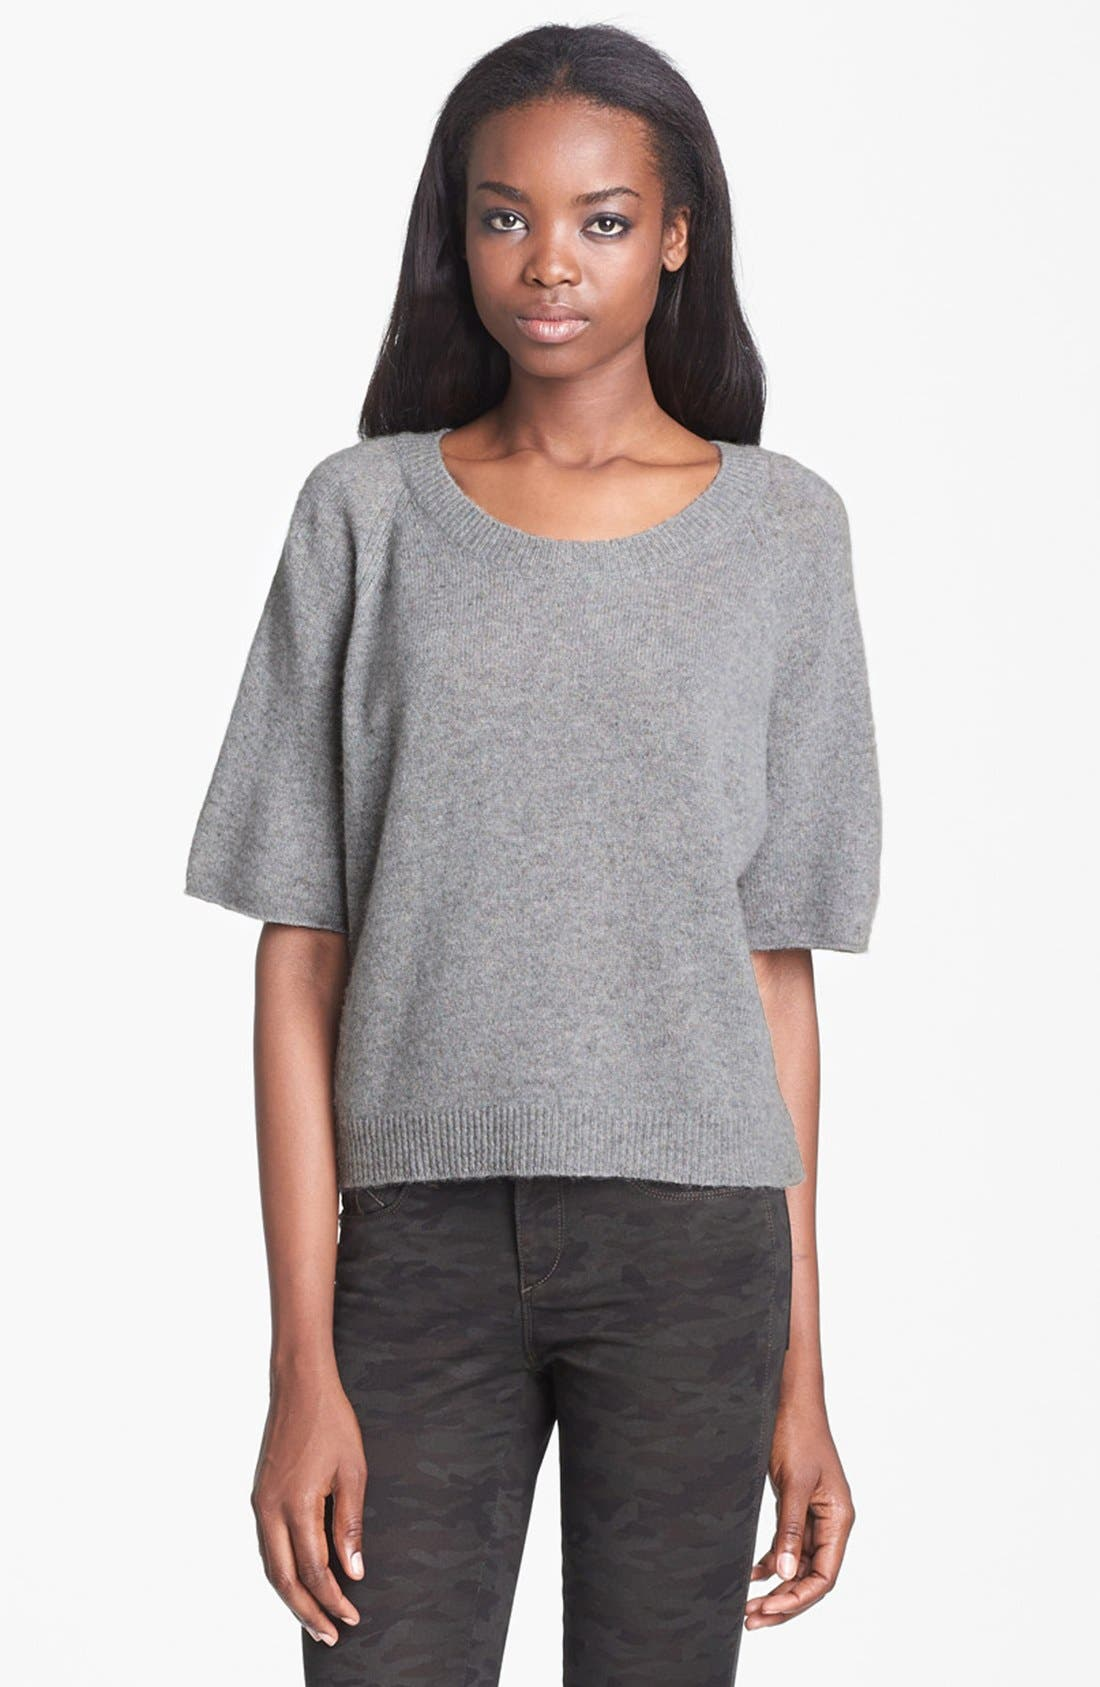 Main Image - Enza Costa Cashmere Top